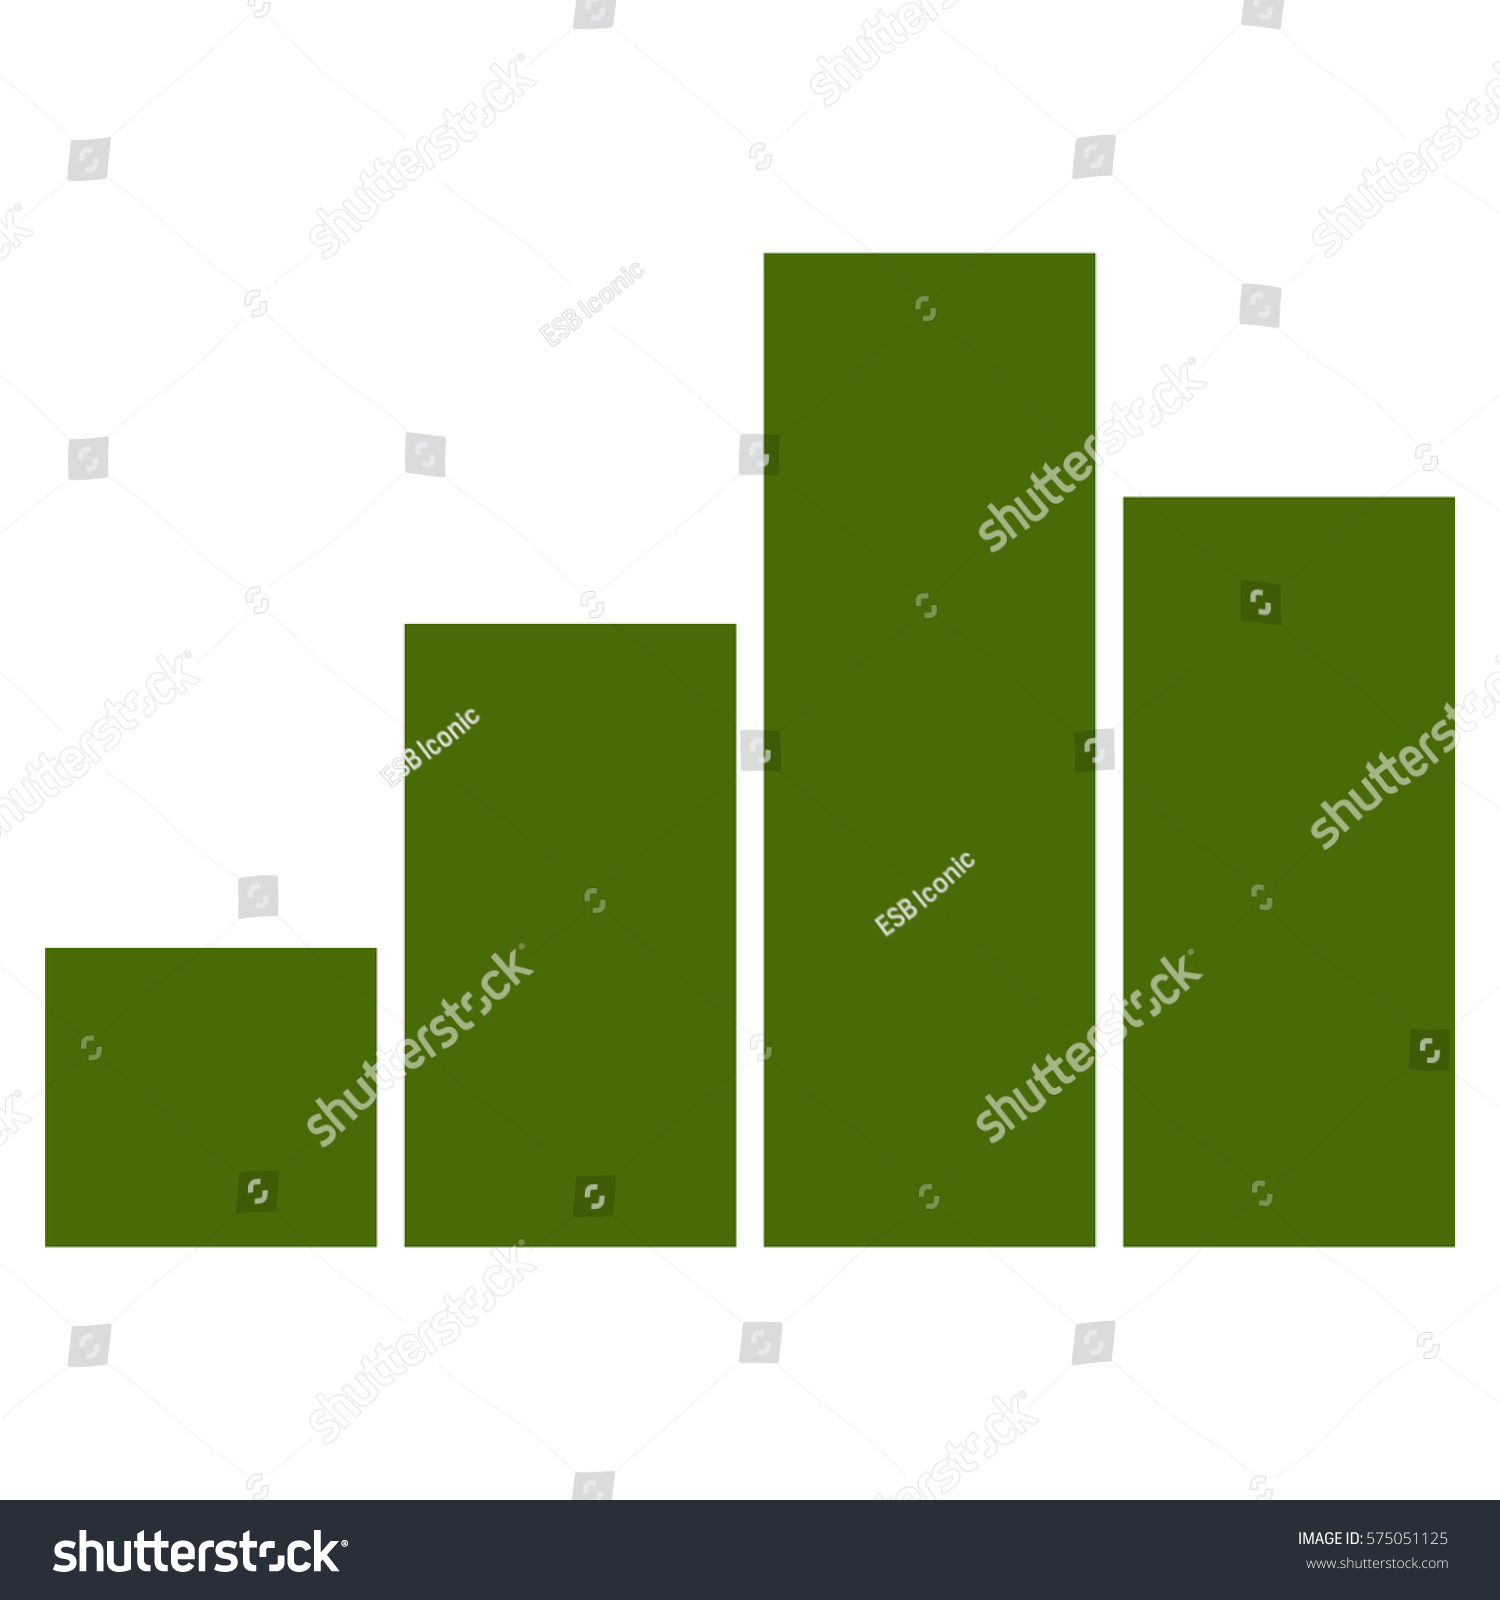 stock vector vector illustration of bar chart in green icon 575051125 swot icon wiring diagrams wiring diagrams flat design letters for th8320r1003 wiring diagrams at crackthecode.co